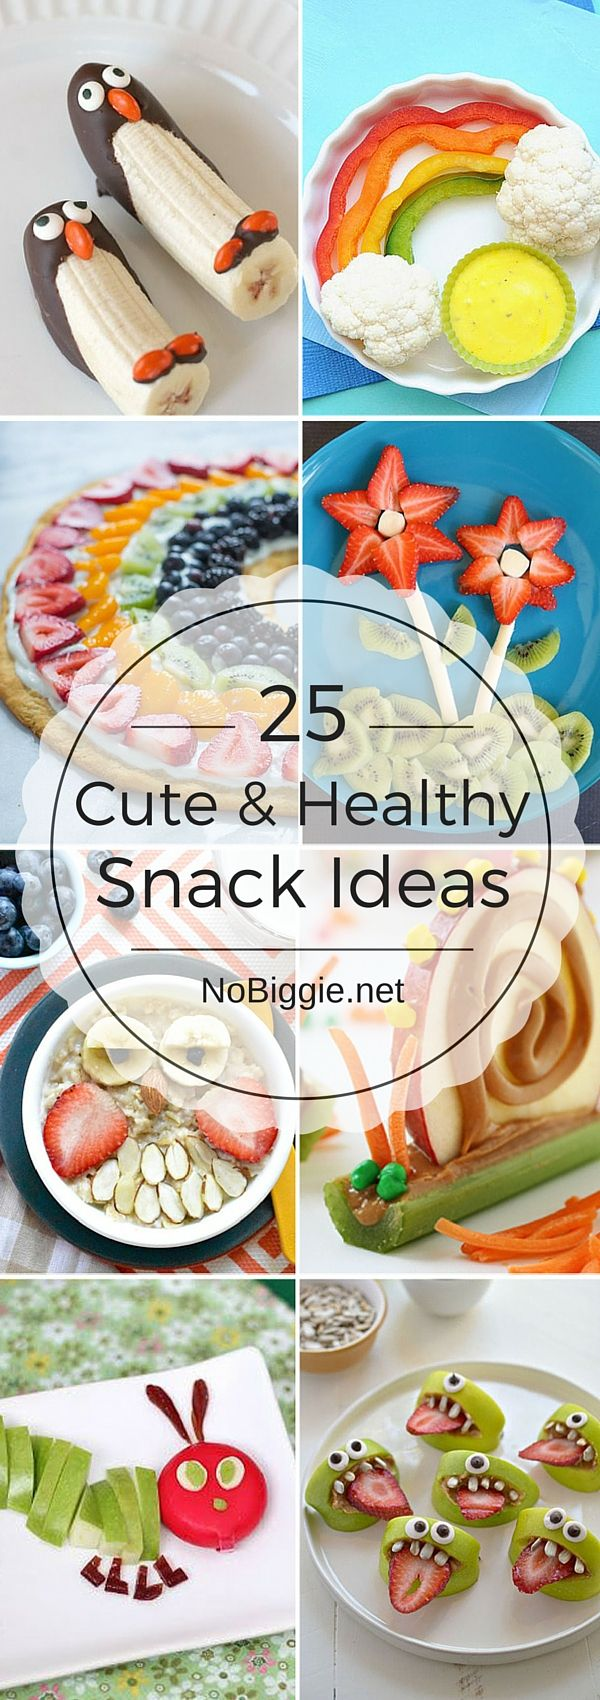 25 Cute and Healthy Snack Ideas